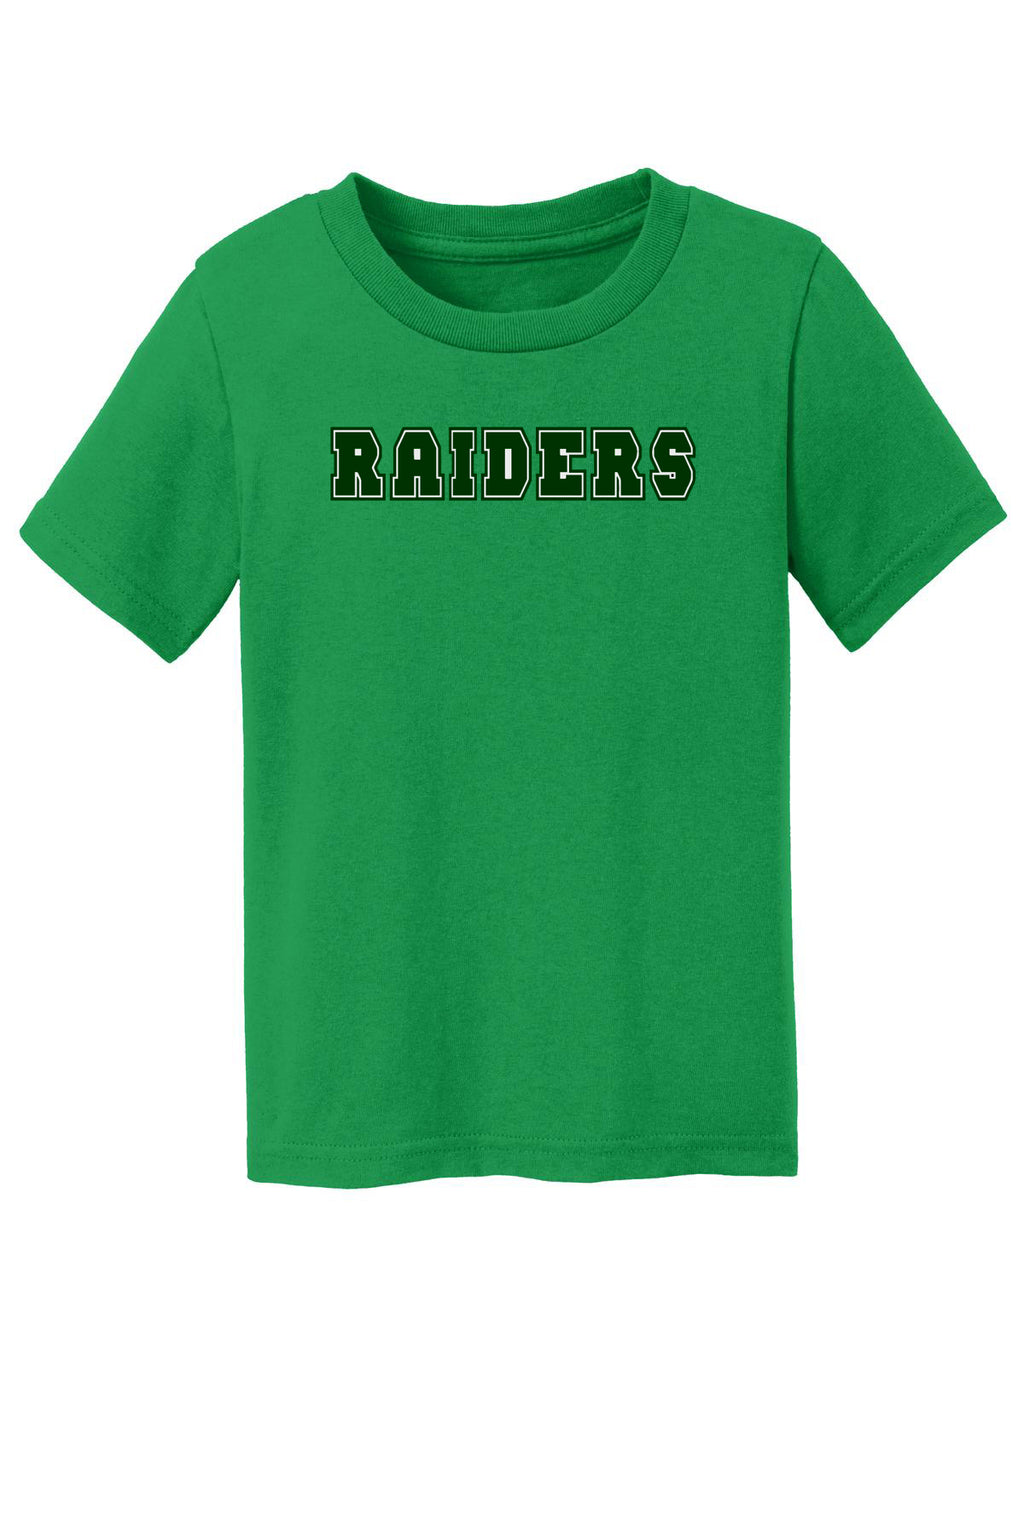 Toddler Green Raiders T-Shirt